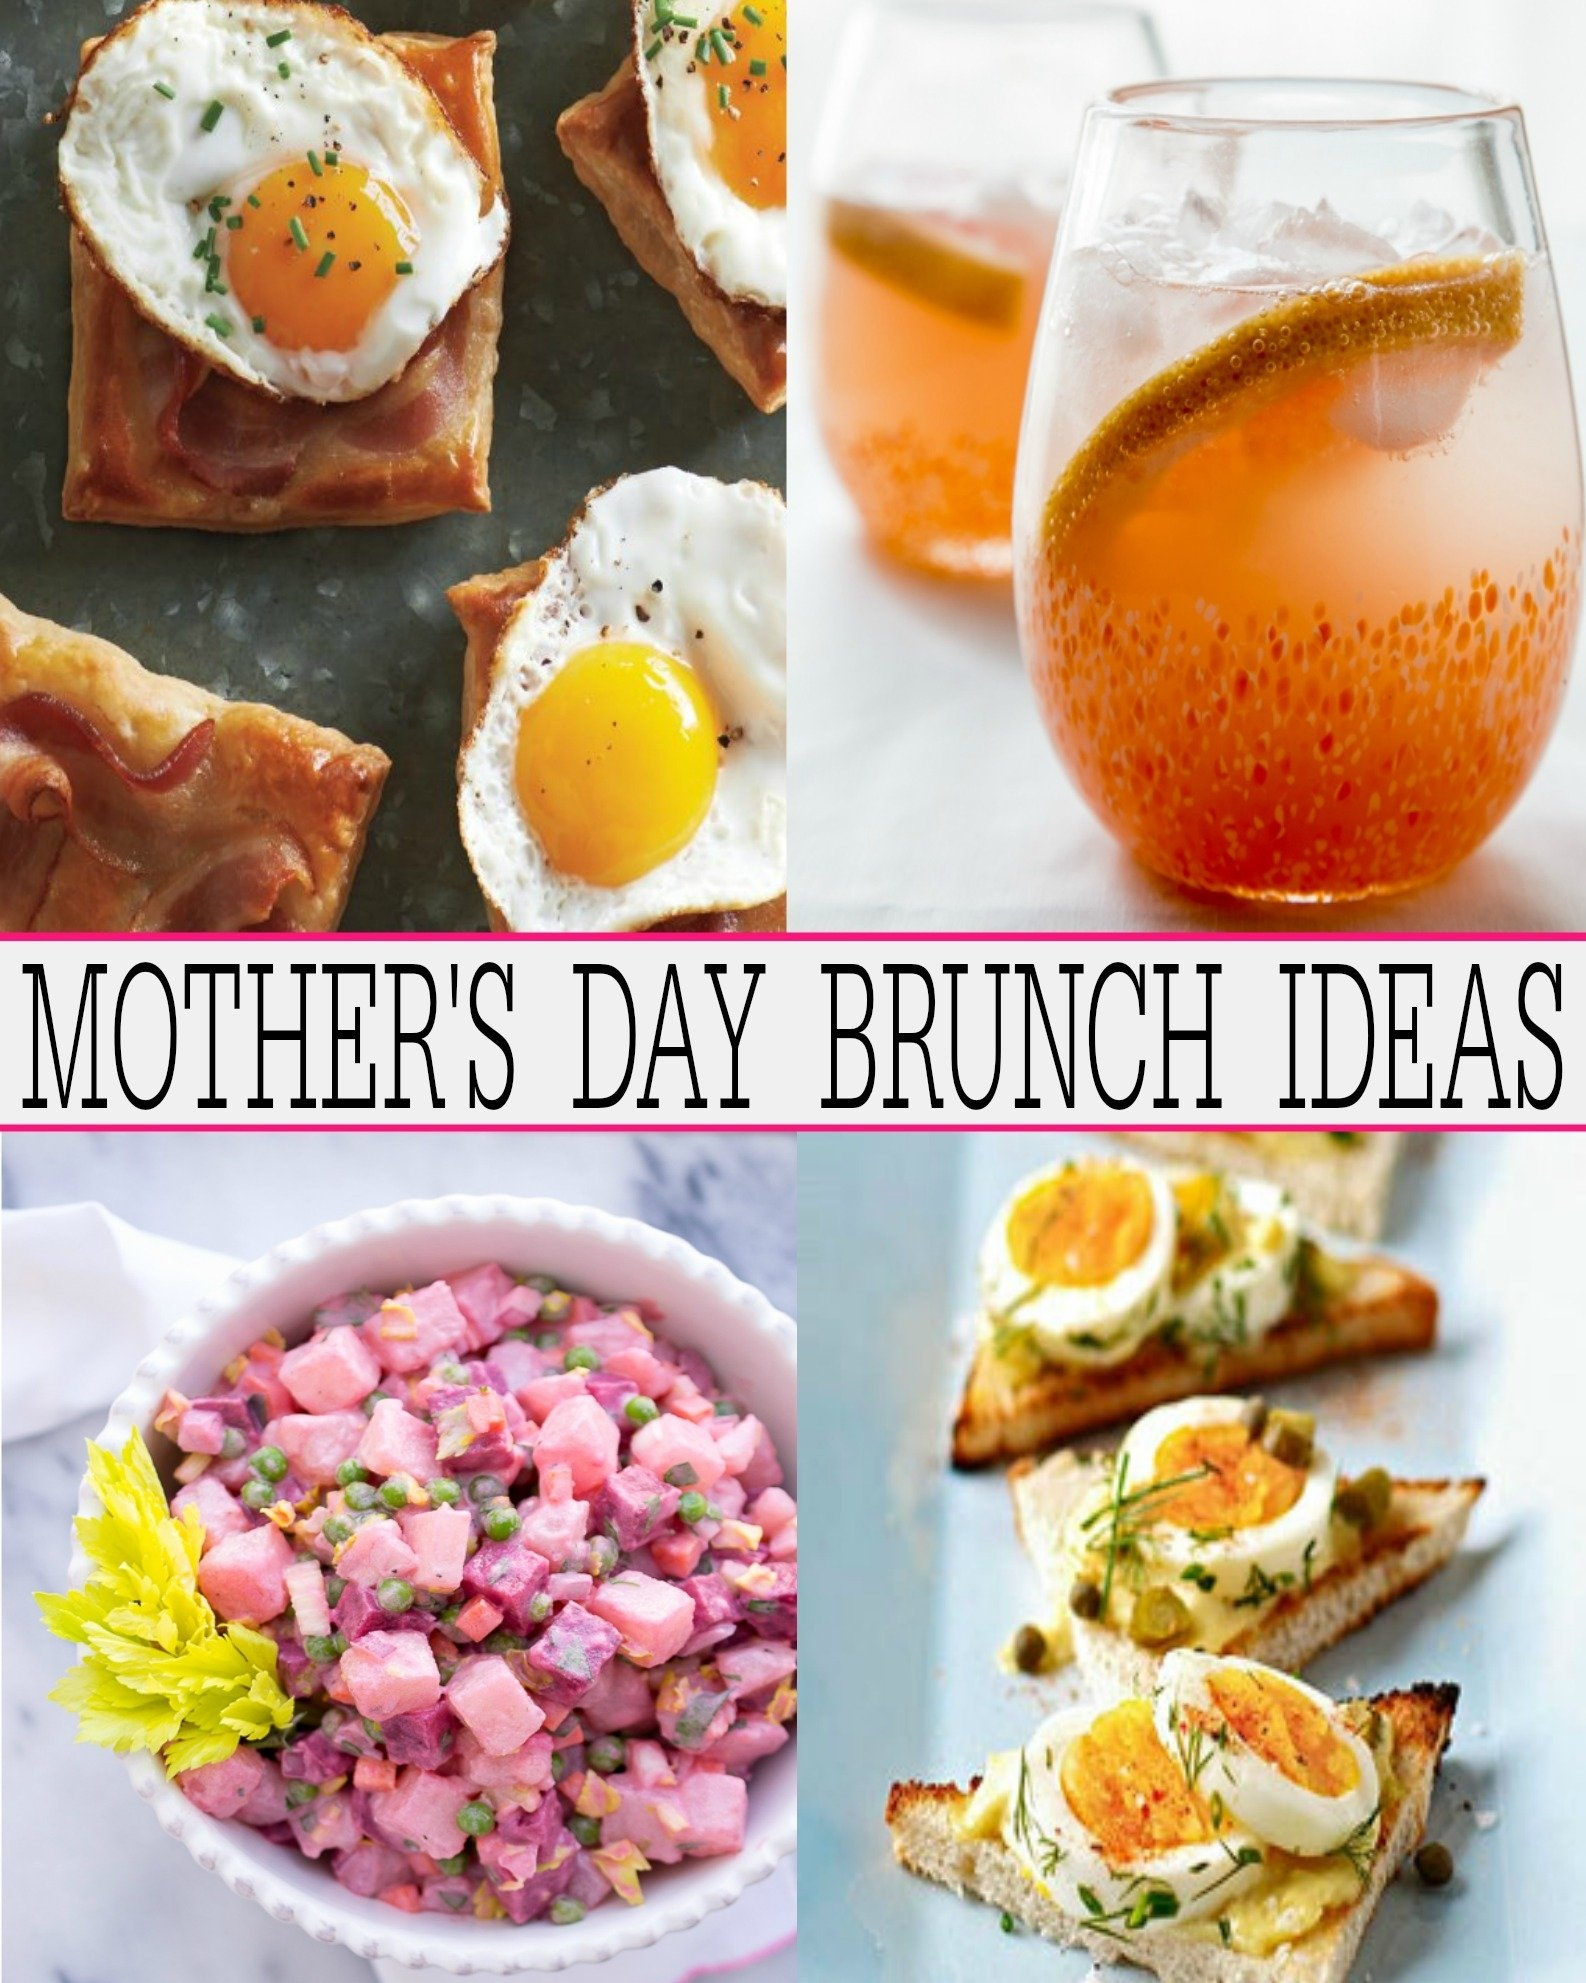 10 Unique Mothers Day Brunch Menu Ideas fabulous mothers day brunch recipes first home love life 1 2021